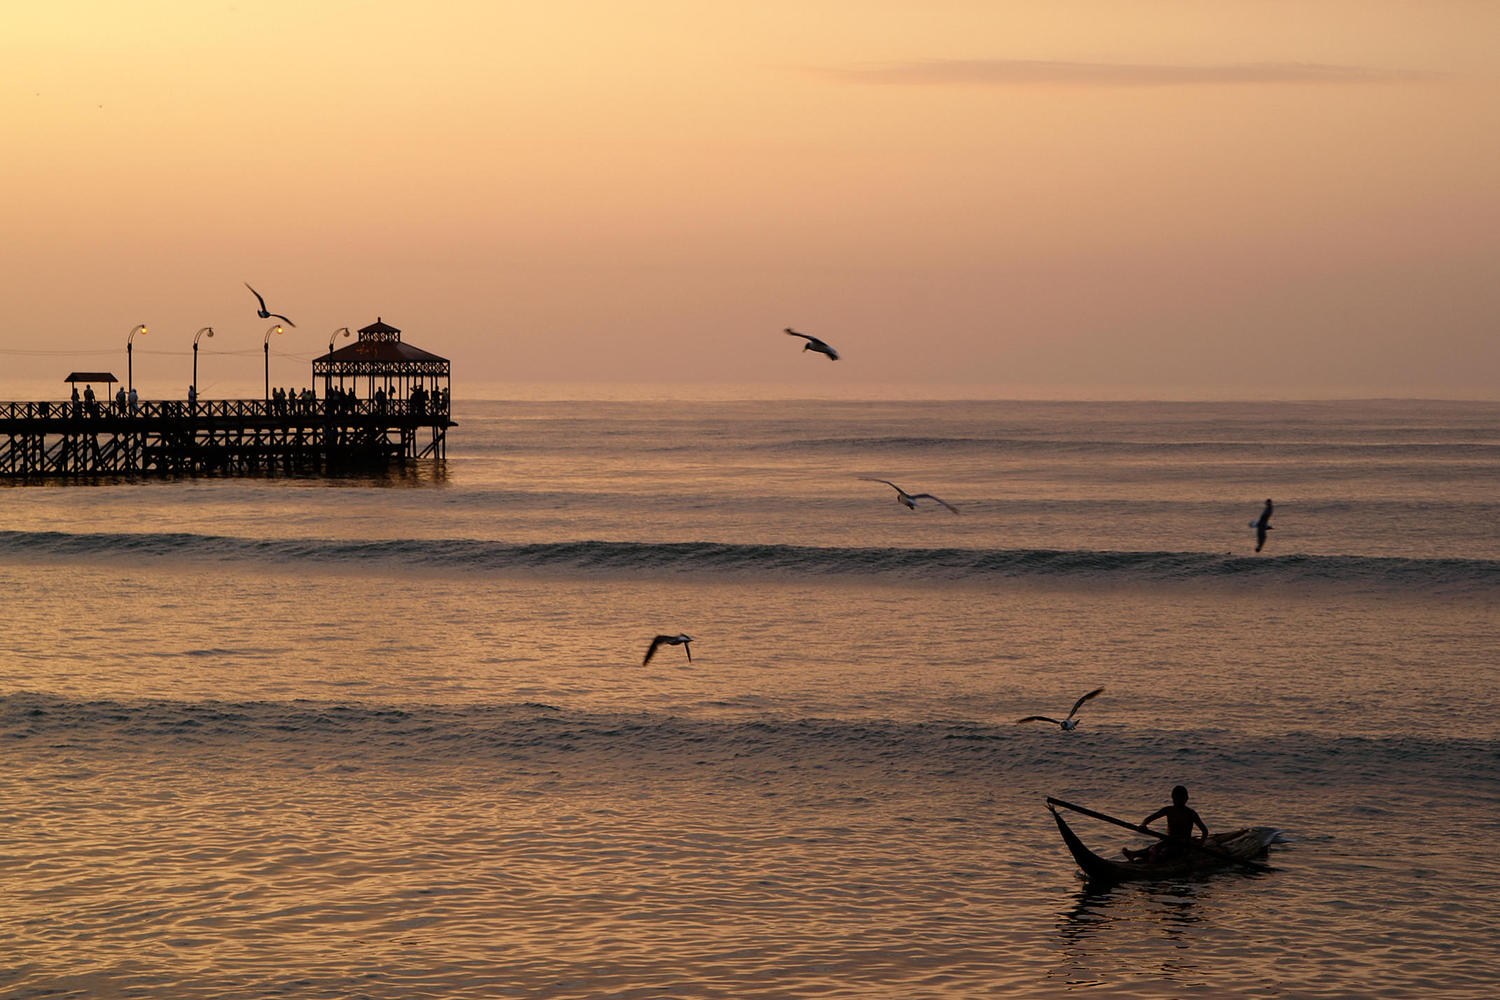 Fisherman returning at sunset to Hunachaco beach